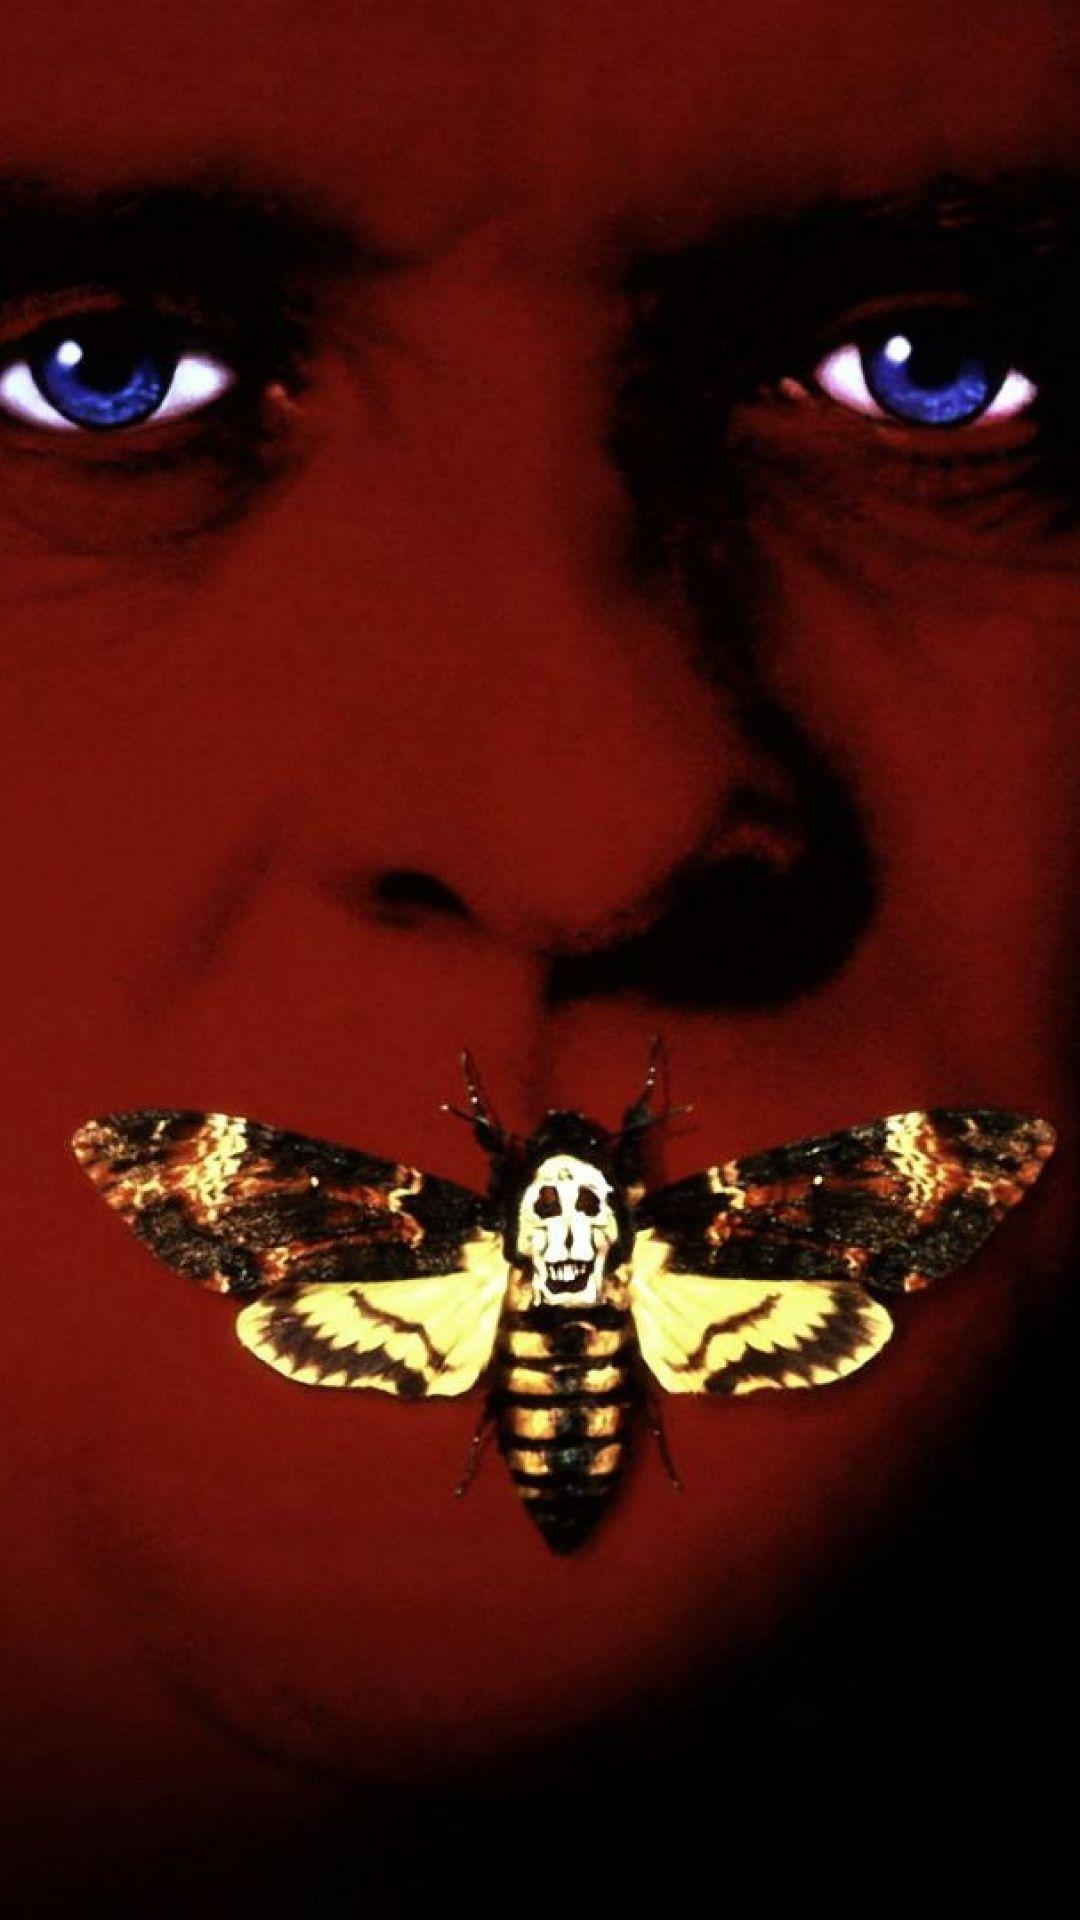 Download Wallpaper 1080x1920 The silence of the lambs, Butterflies ...